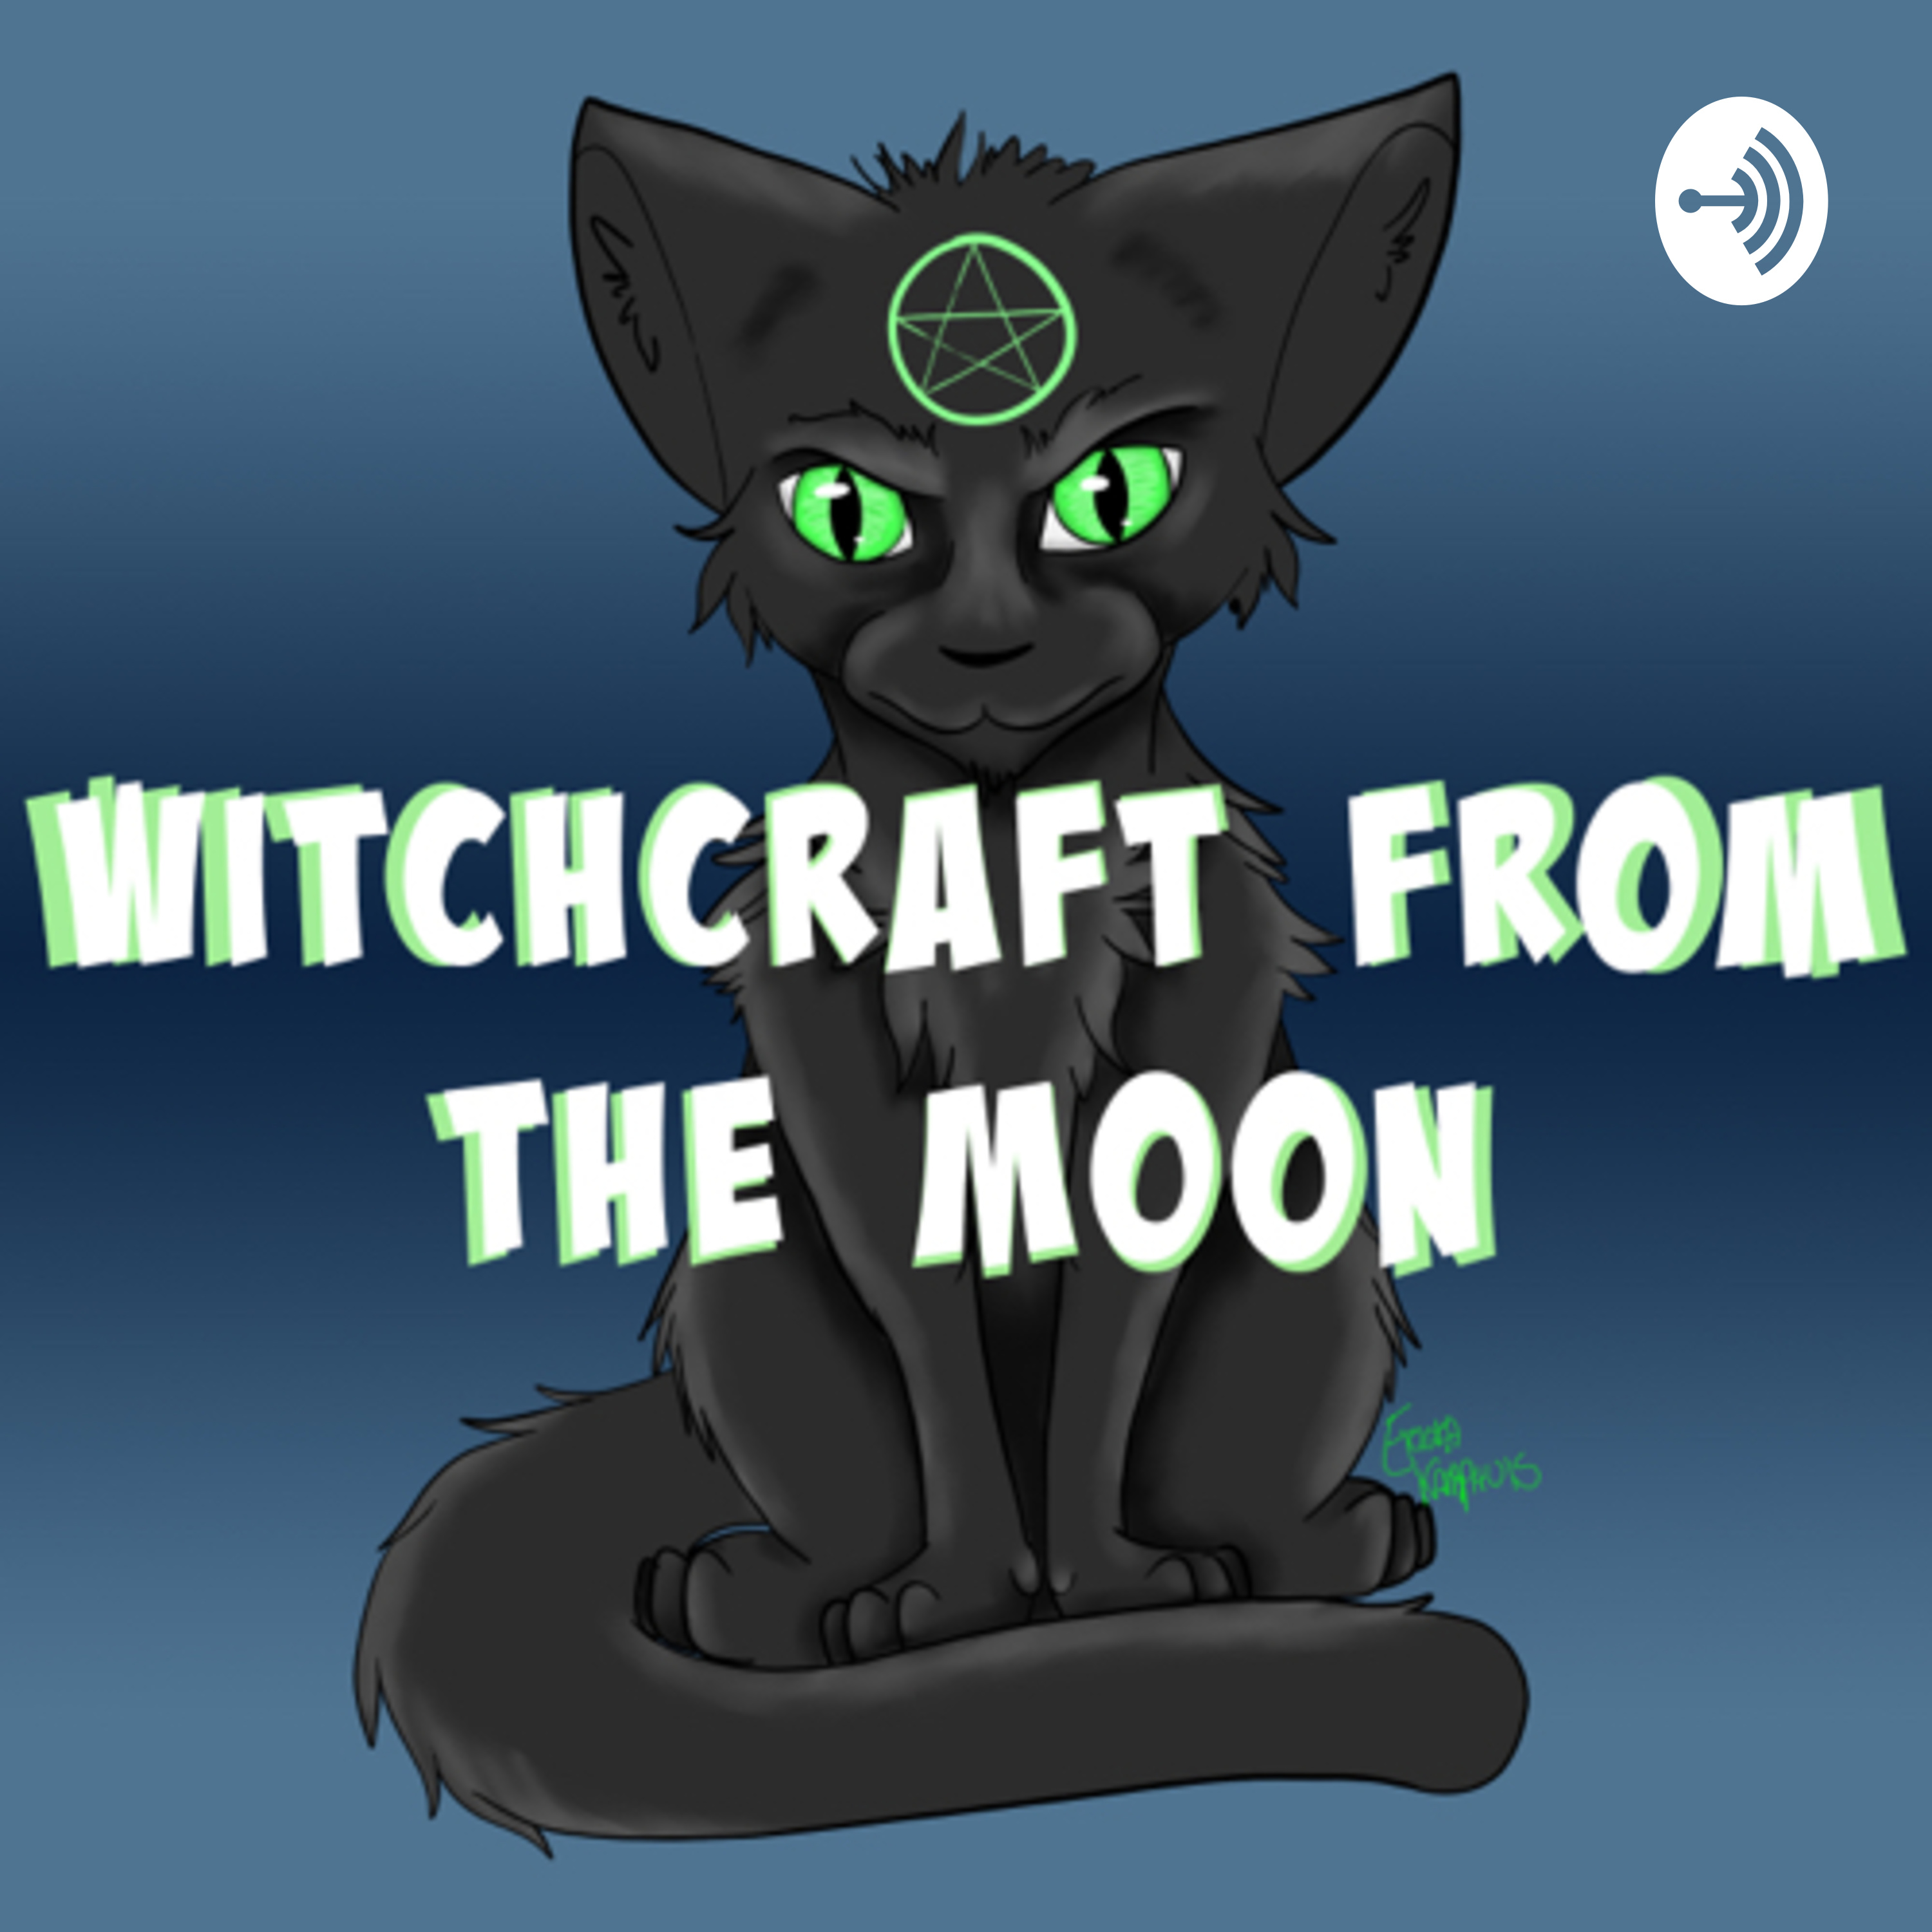 Witchcraft from the Moon